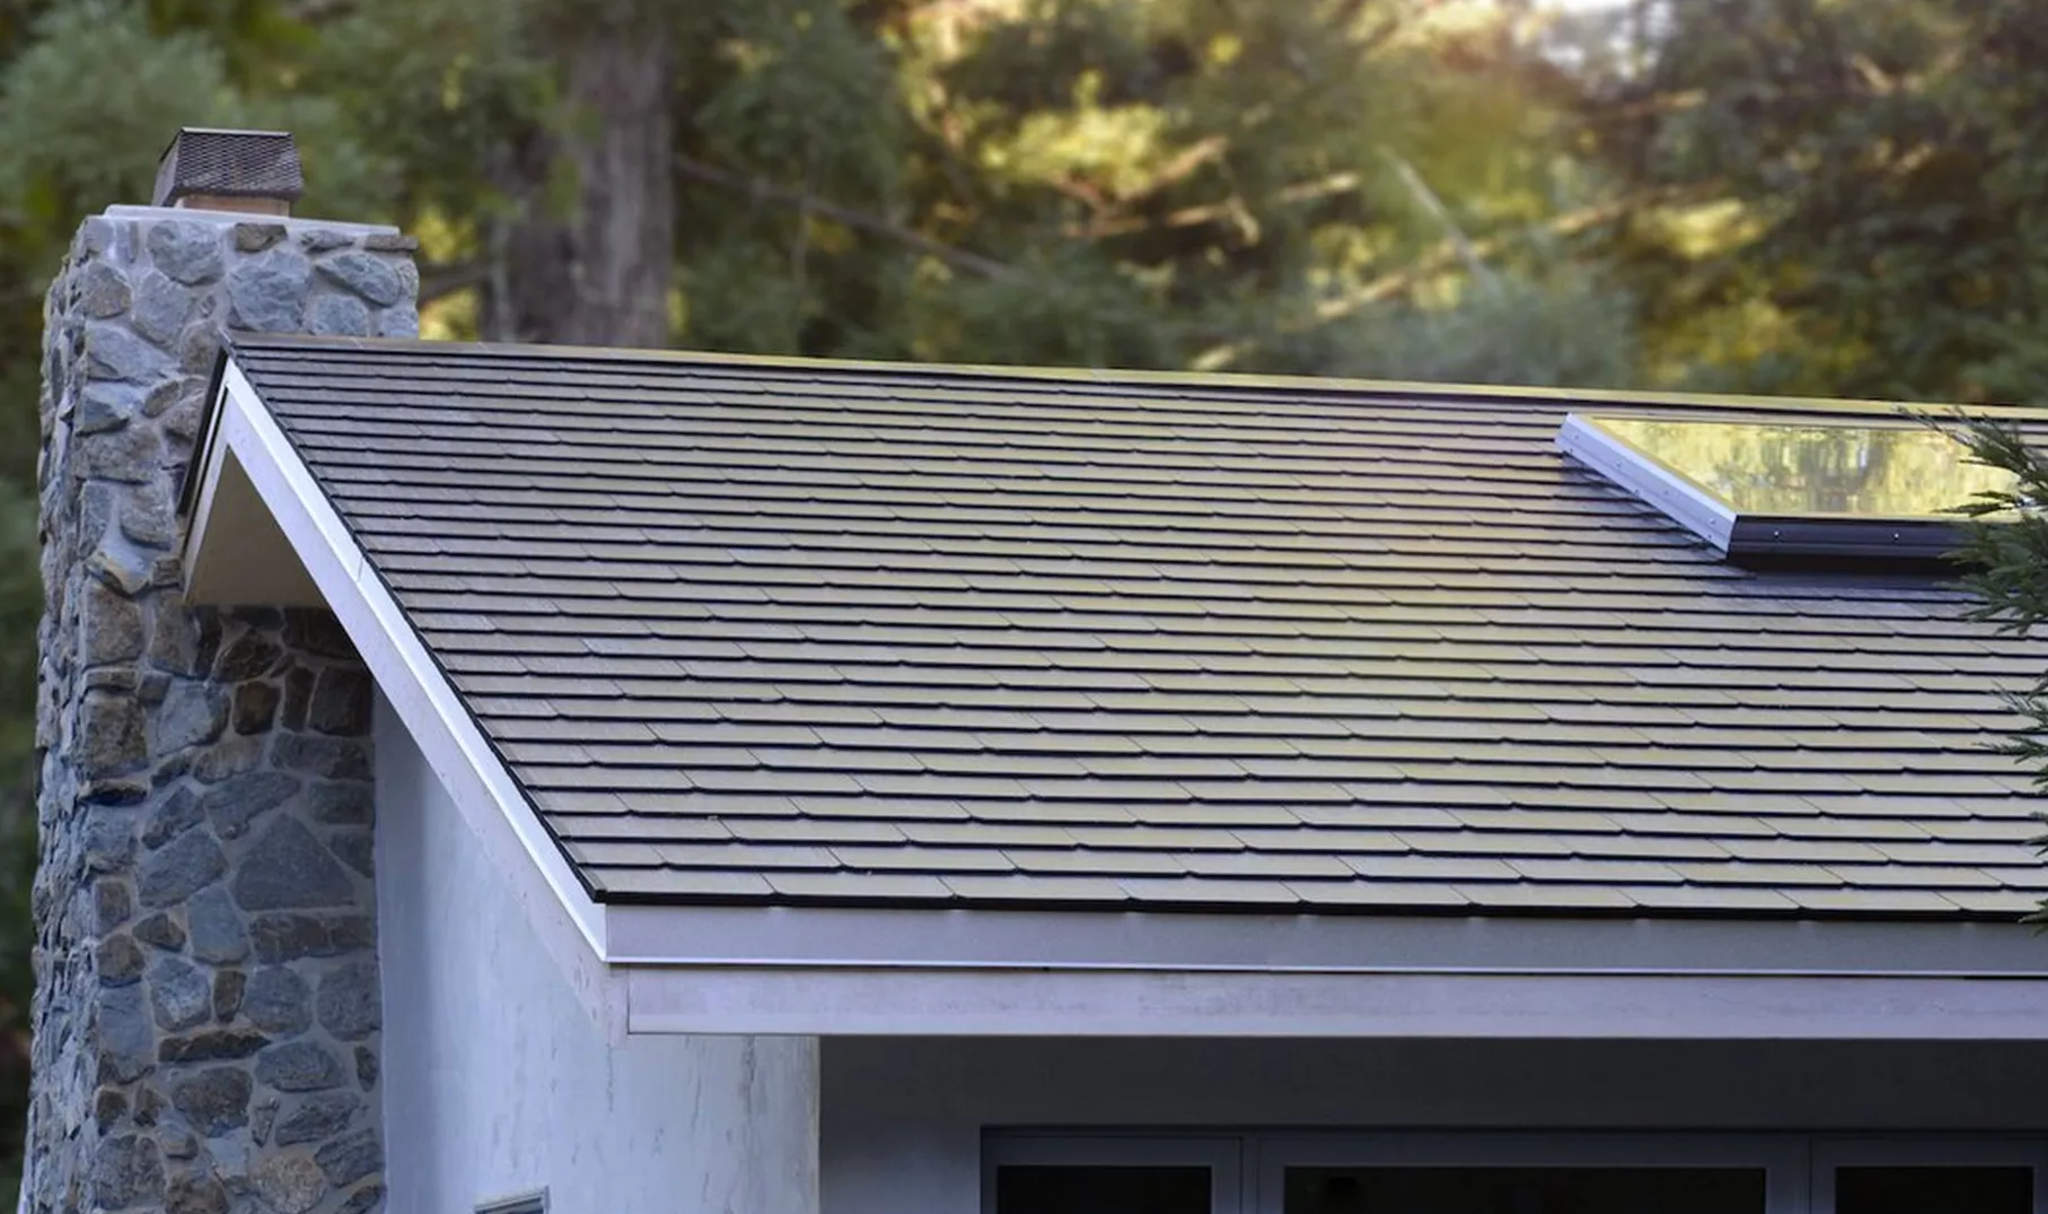 Musk Reads: 2019 Is the 'Year of the Tesla Solar Roof'